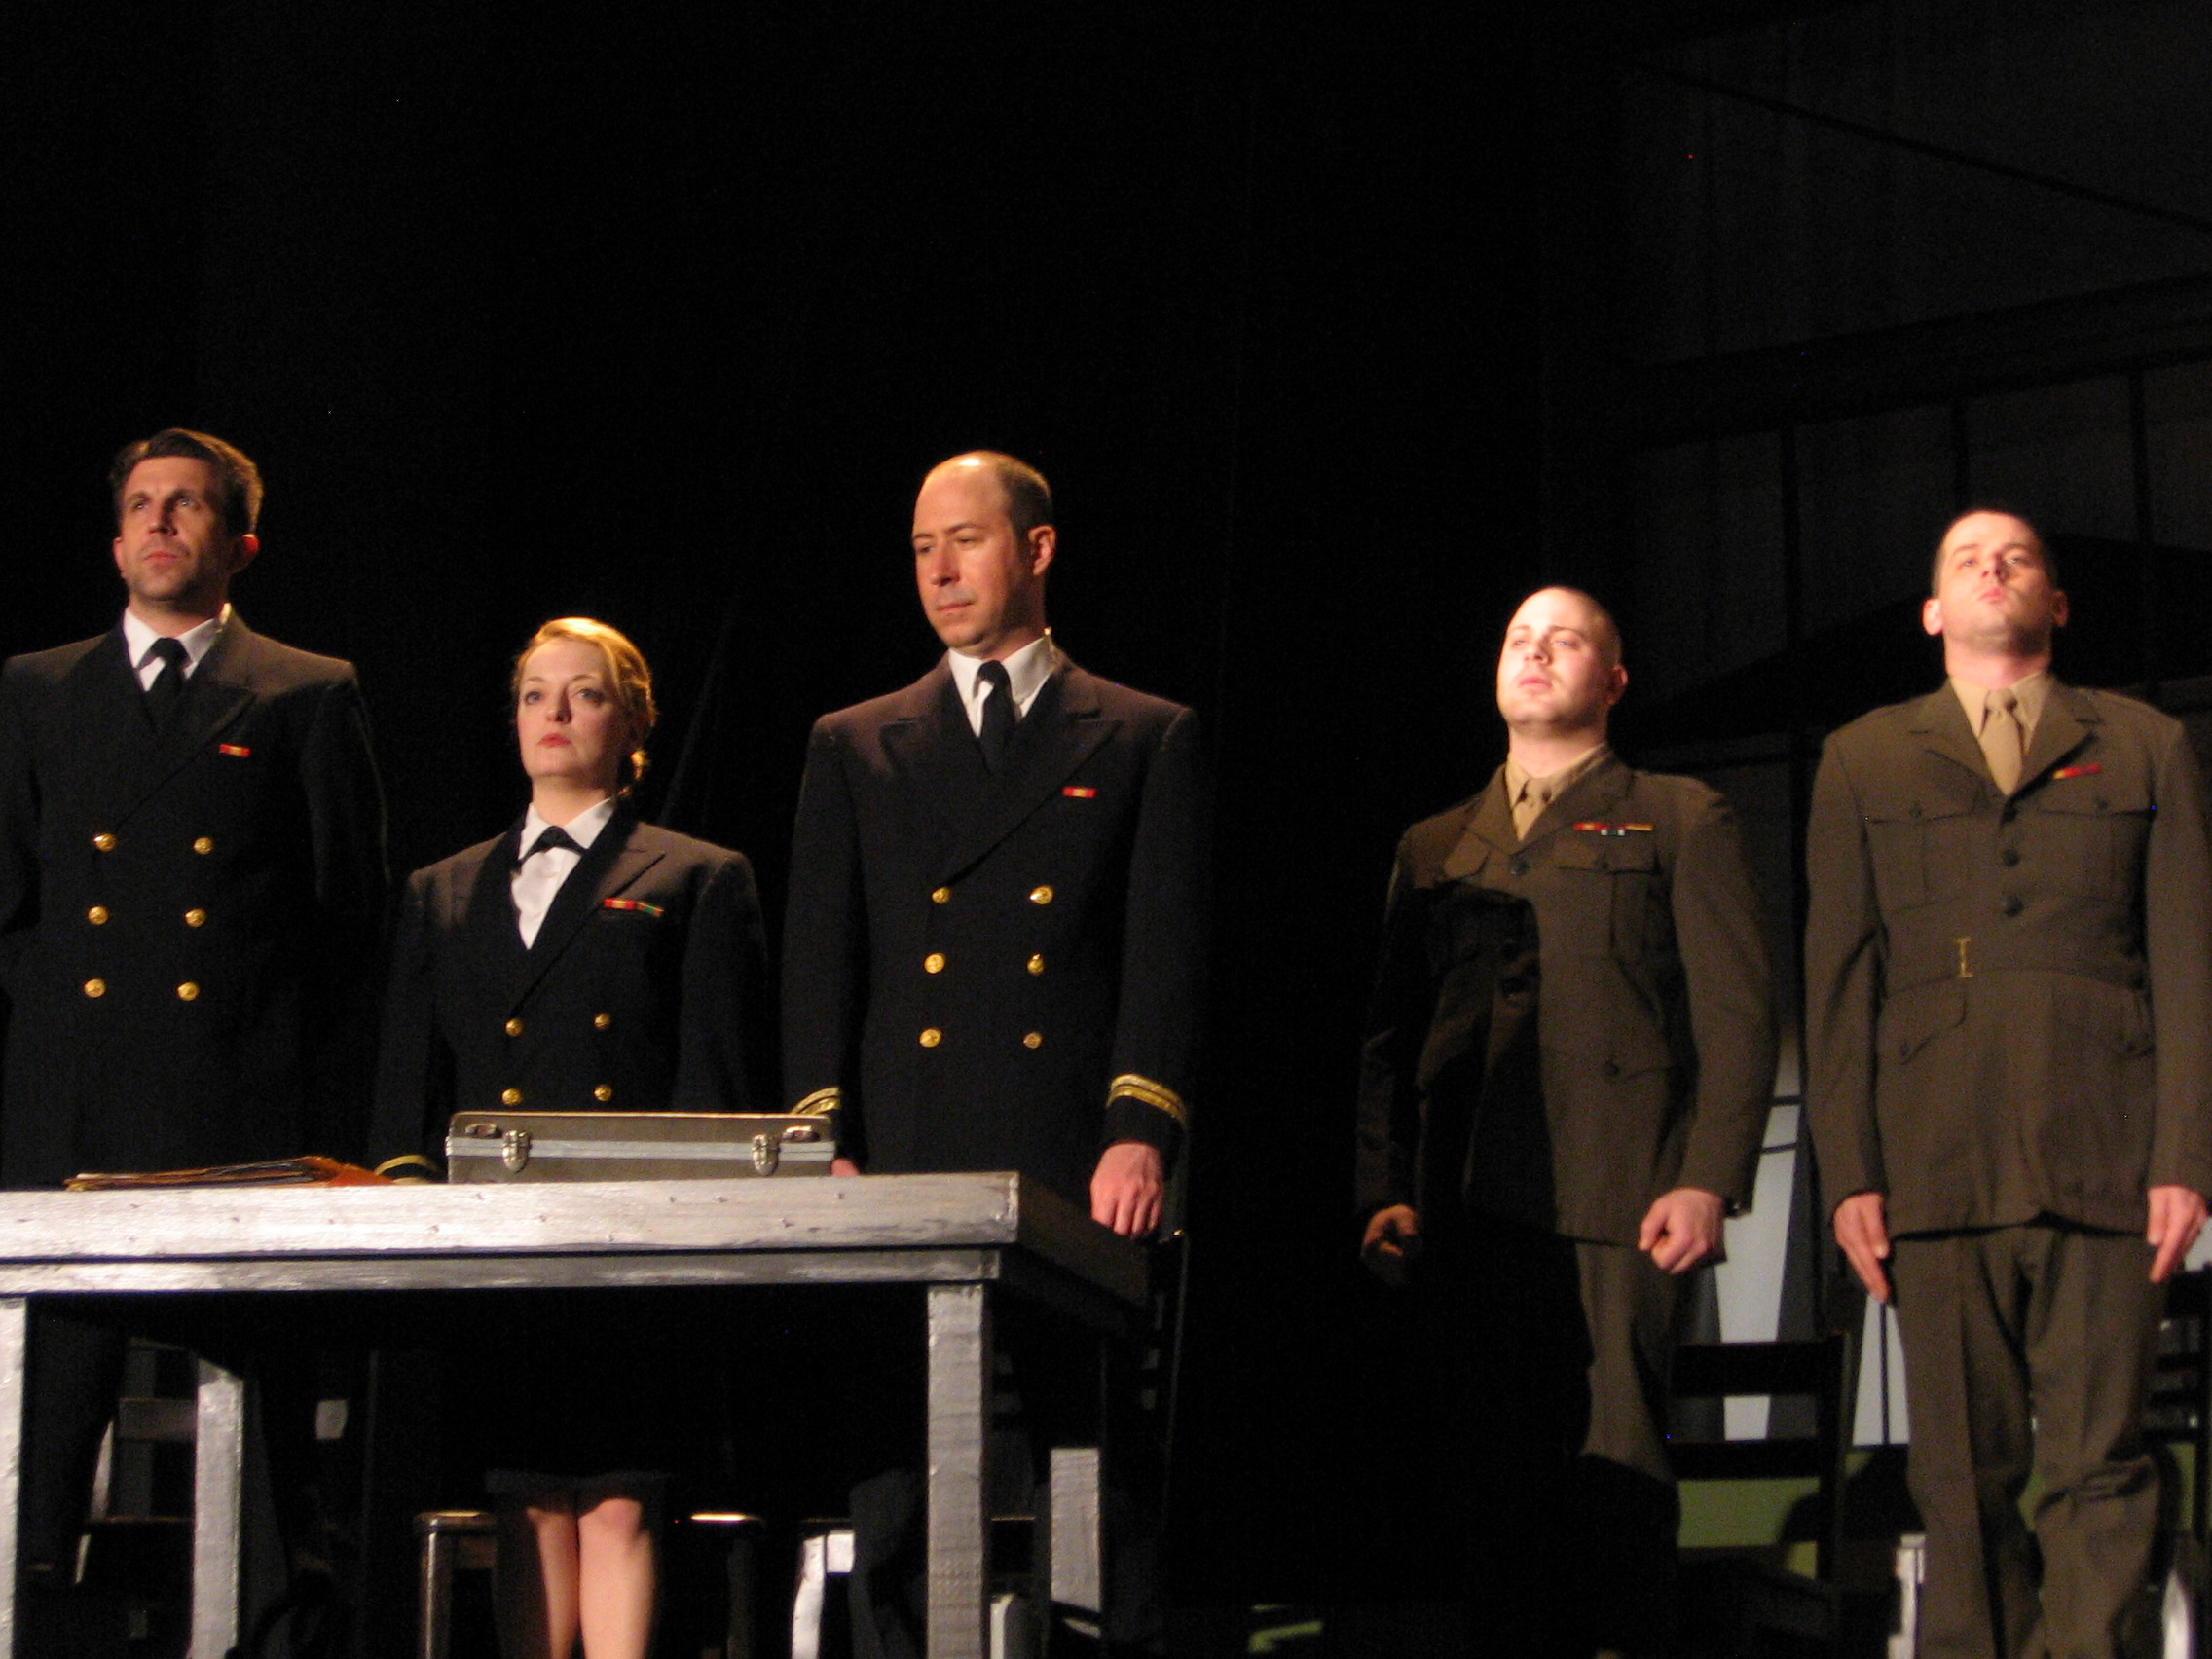 BWW Reviews: Corps Values -- A FEW GOOD MEN Stands and Delivers